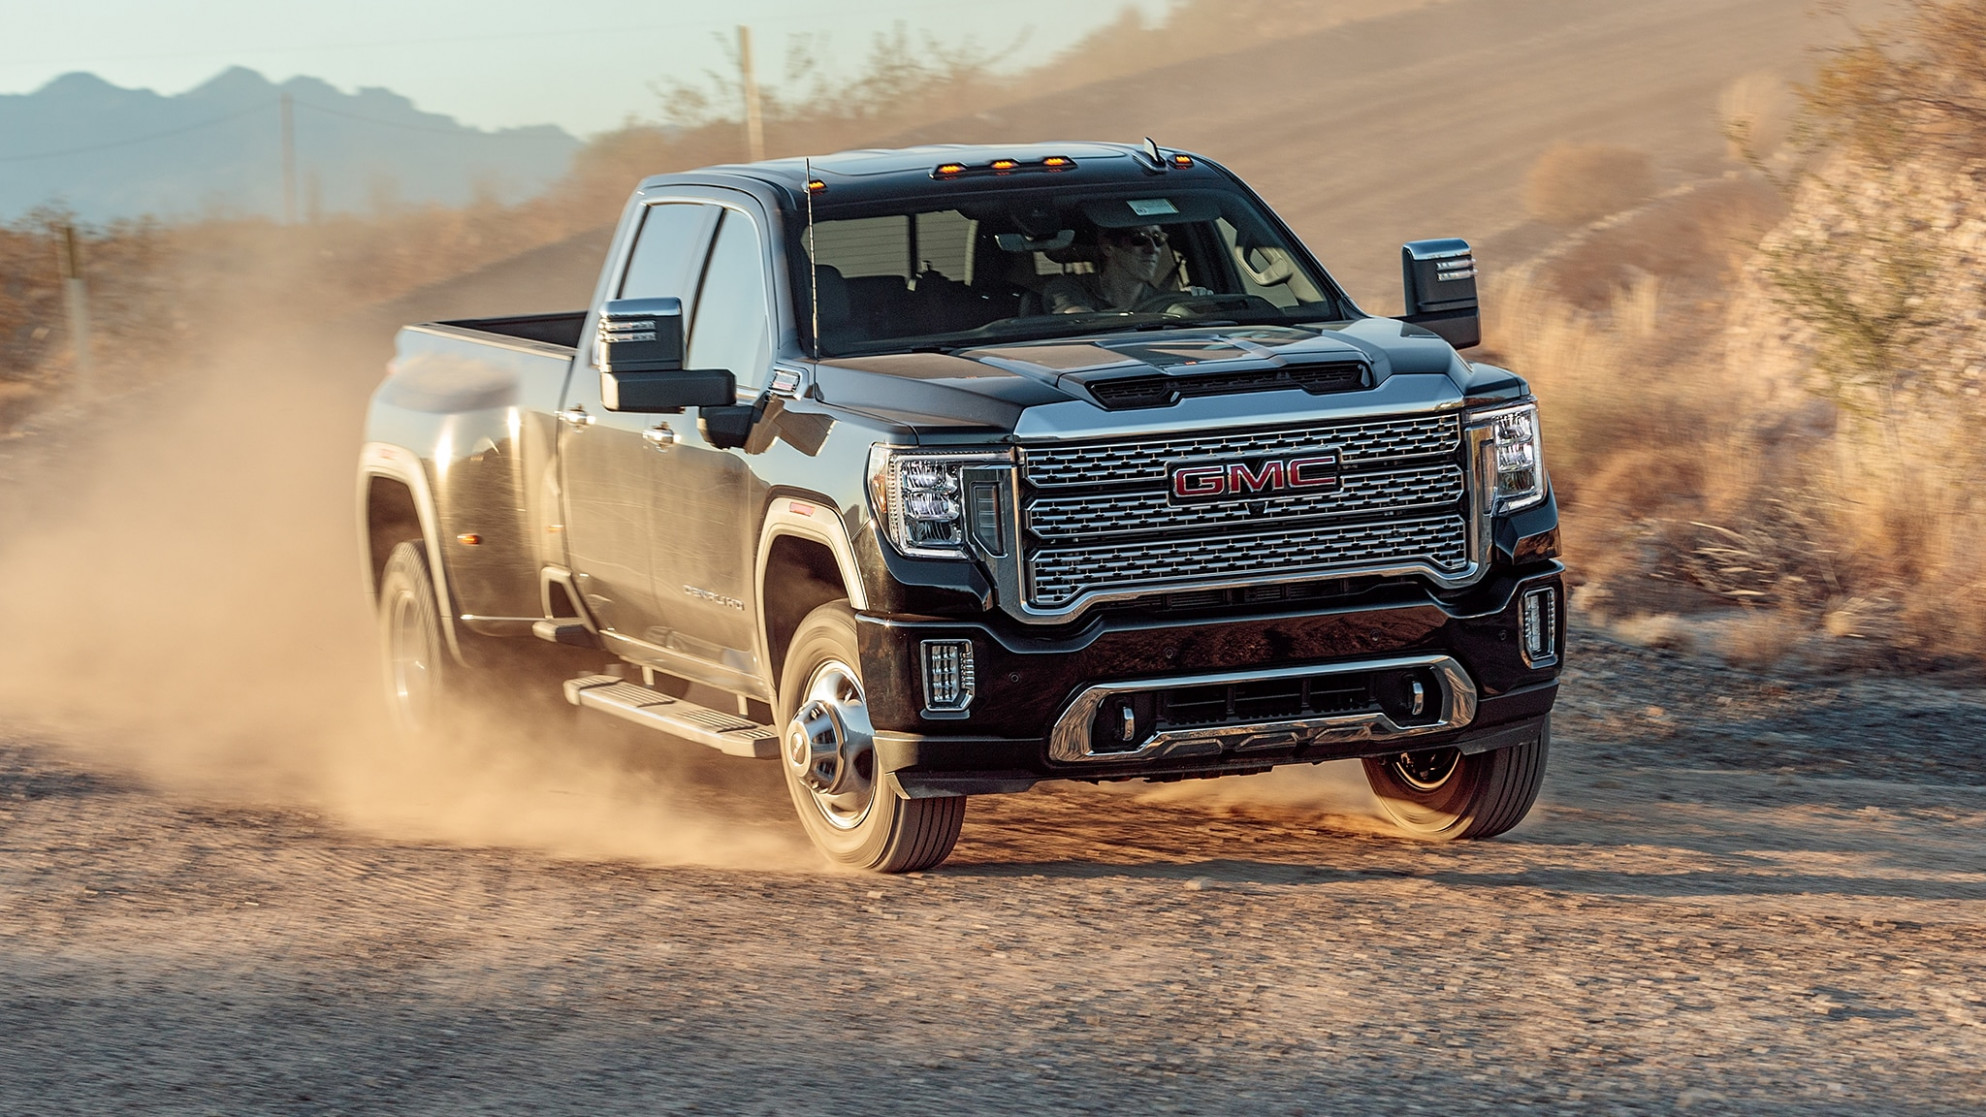 5 GMC Sierra 5HD Review: The Good, the Bad, and the Ugly | 2020 GMC Sierra 3500Hd